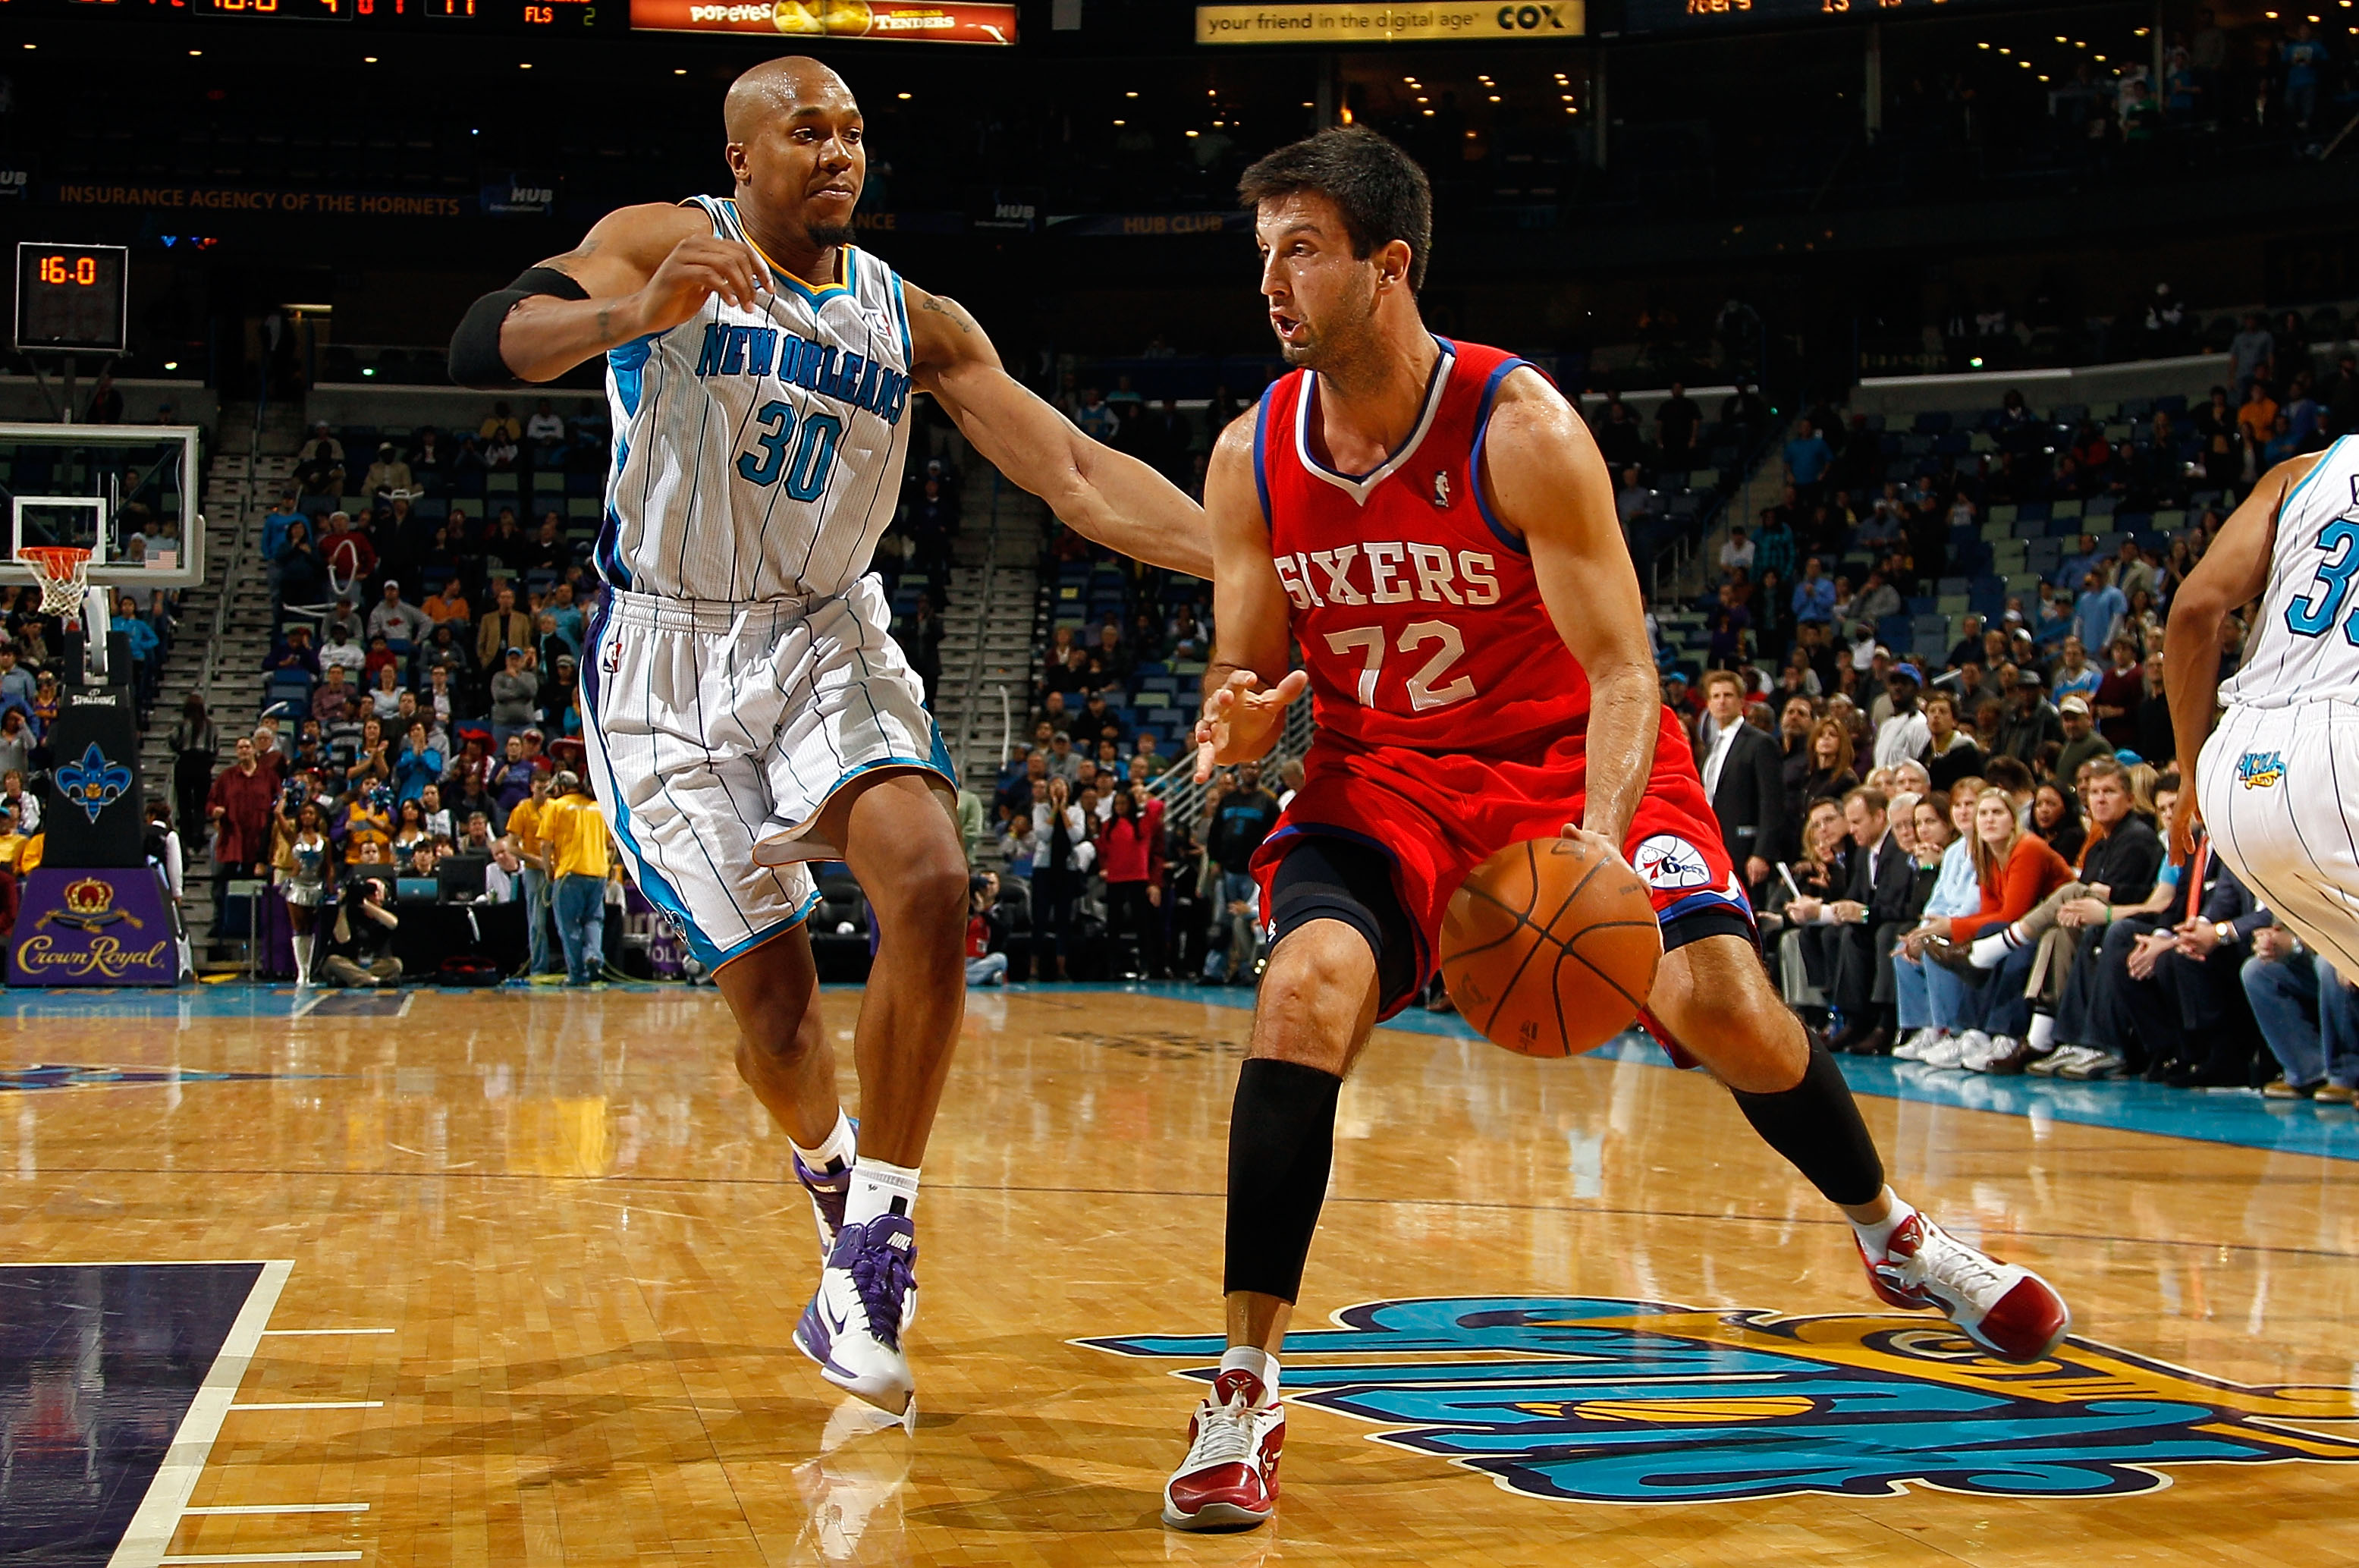 NEW ORLEANS, LA - JANUARY 03:  Jason Kapono #72 of the Philadelphia 76ers moves the ball against David West #30 of the New Orleans Hornets at New Orleans Arena on January 3, 2011 in New Orleans, Louisiana. NOTE TO USER: User expressly acknowledges and agr